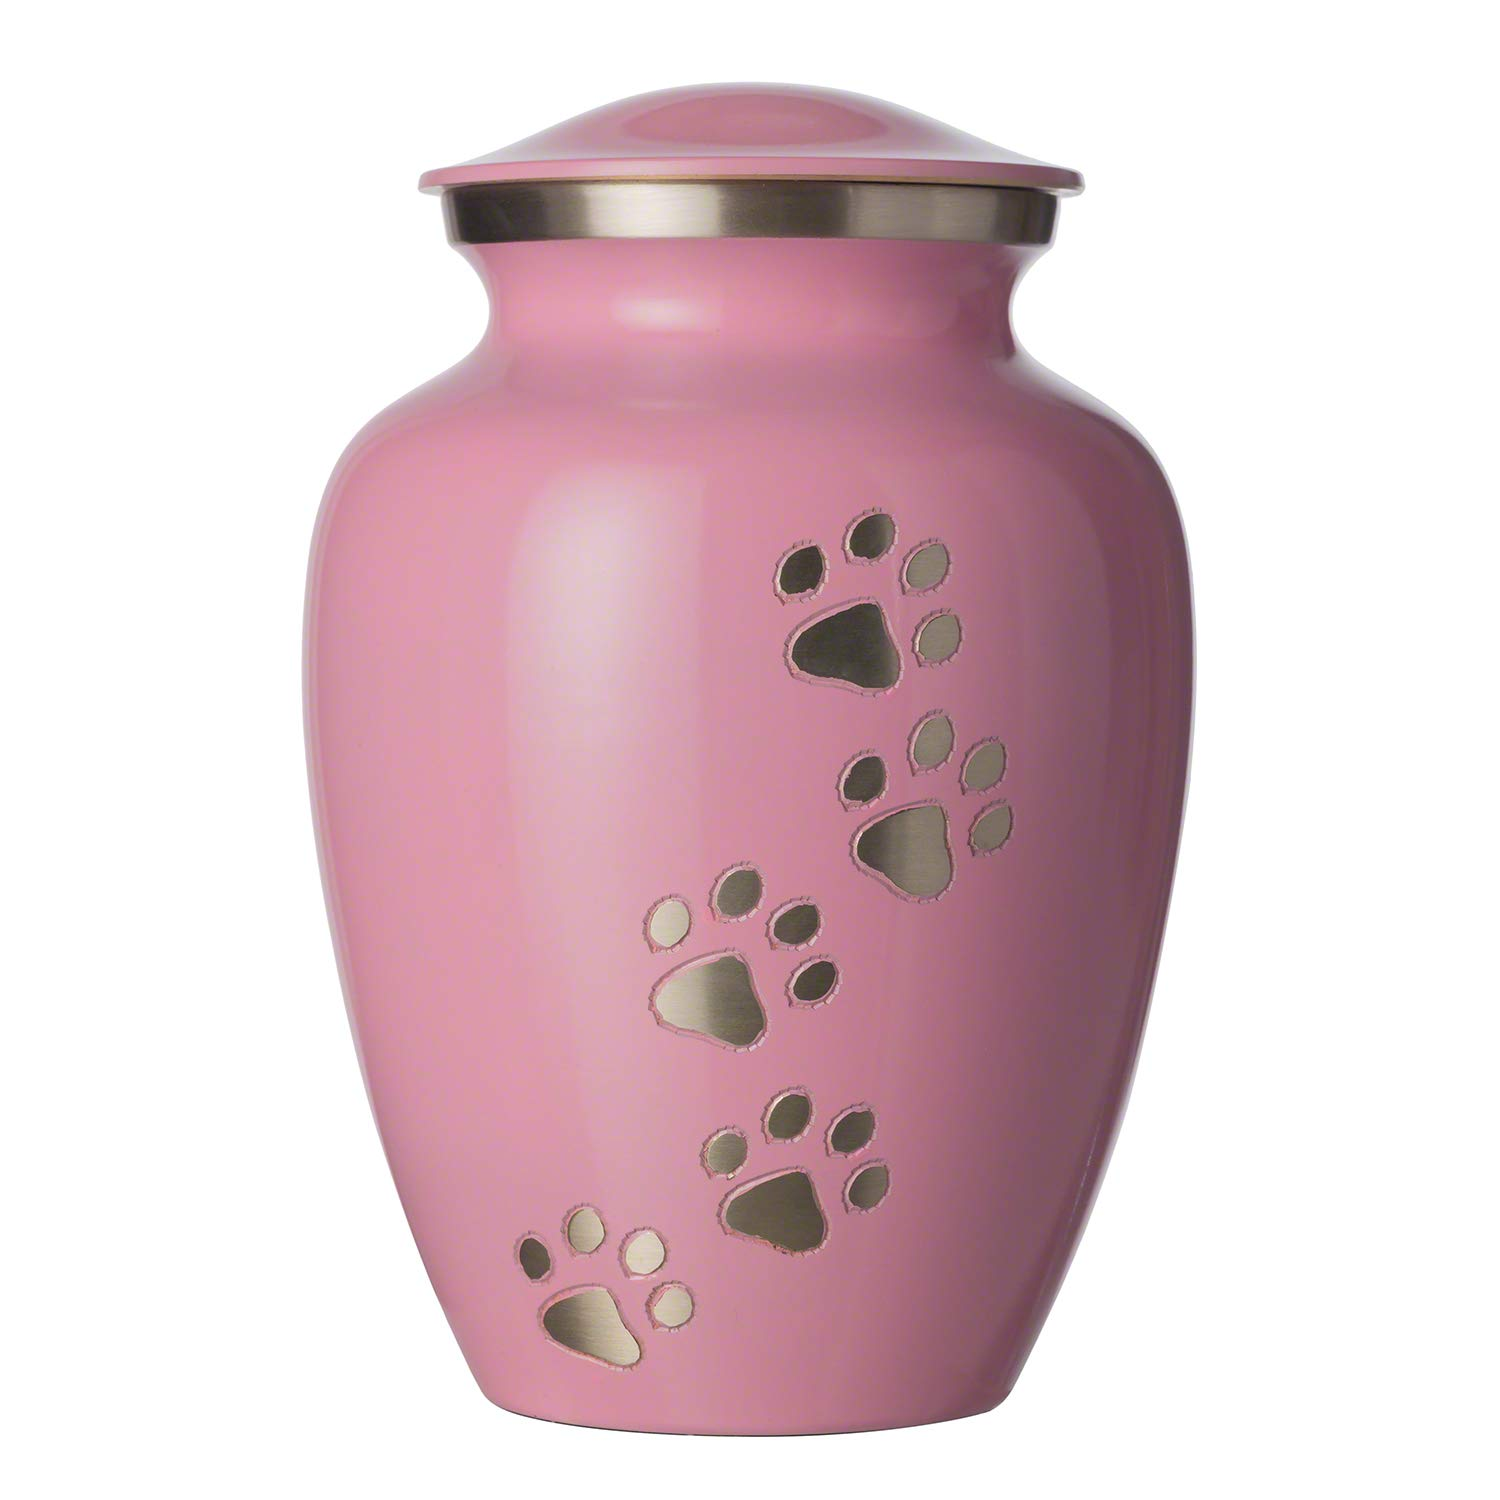 Best Friend Services Pet Urn - Ottillie Paws Memorial Pet Cremation Urns for Dogs and Cats Ashes Hand Carved Brass Memory Keepsake Urn